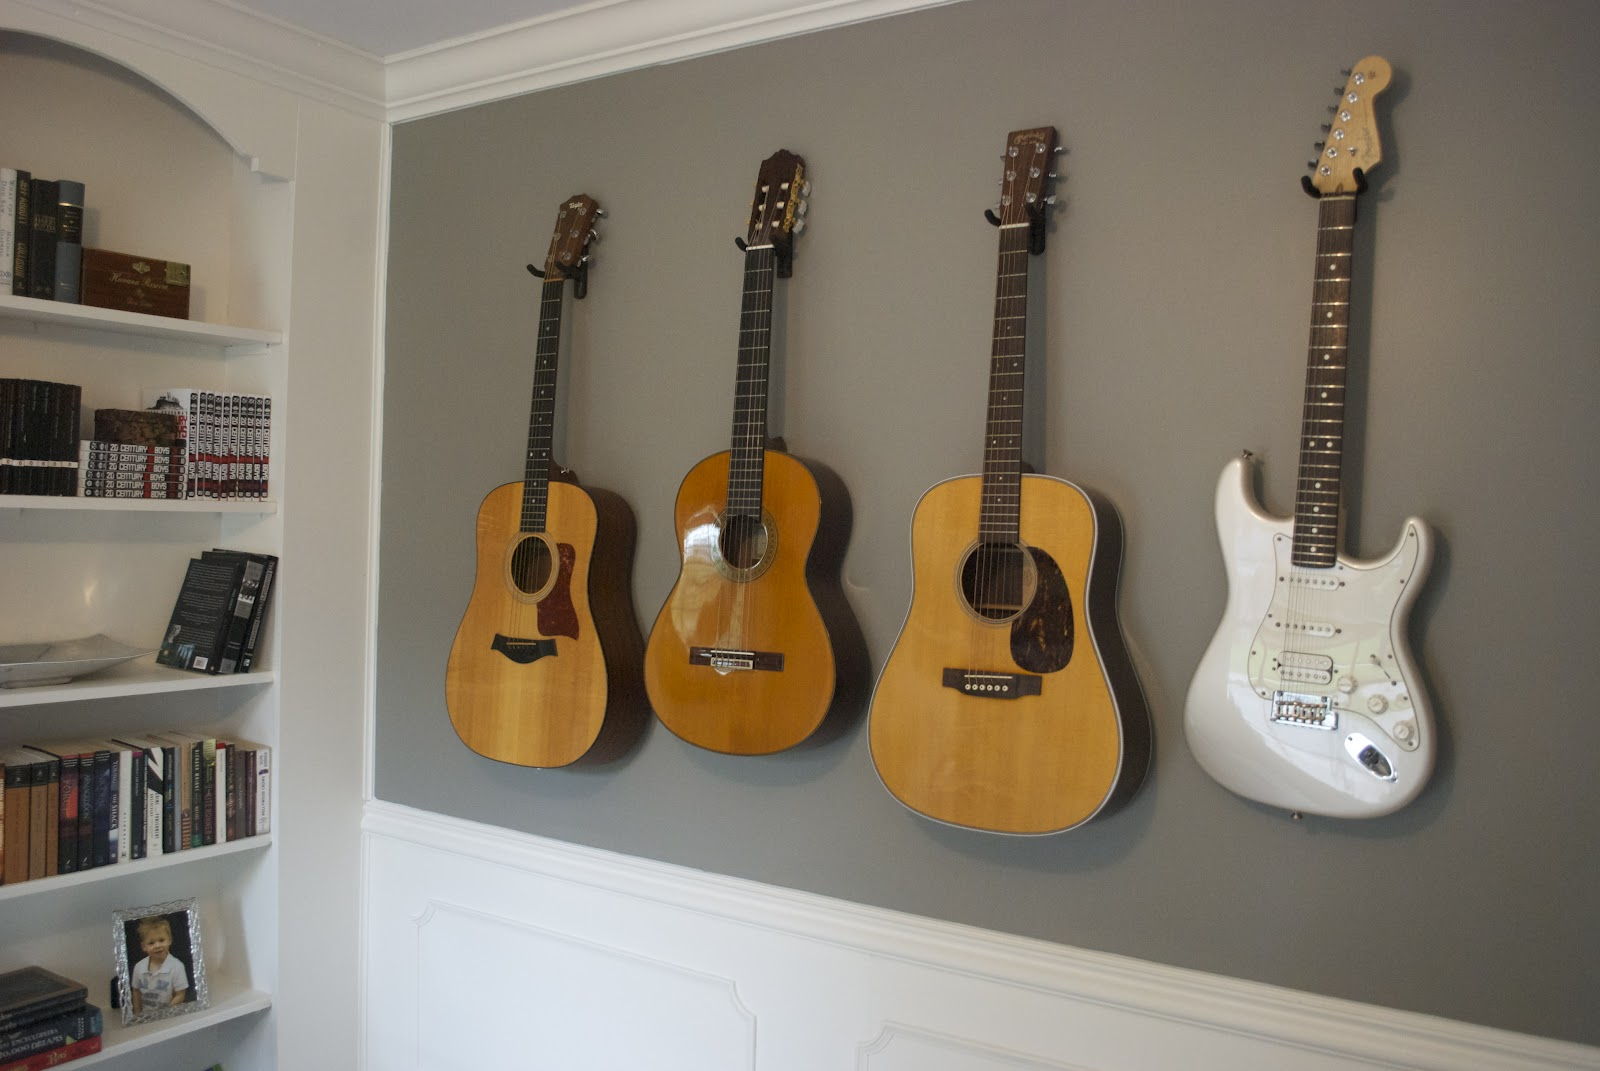 How To Build A Guitar Stand On The Wall